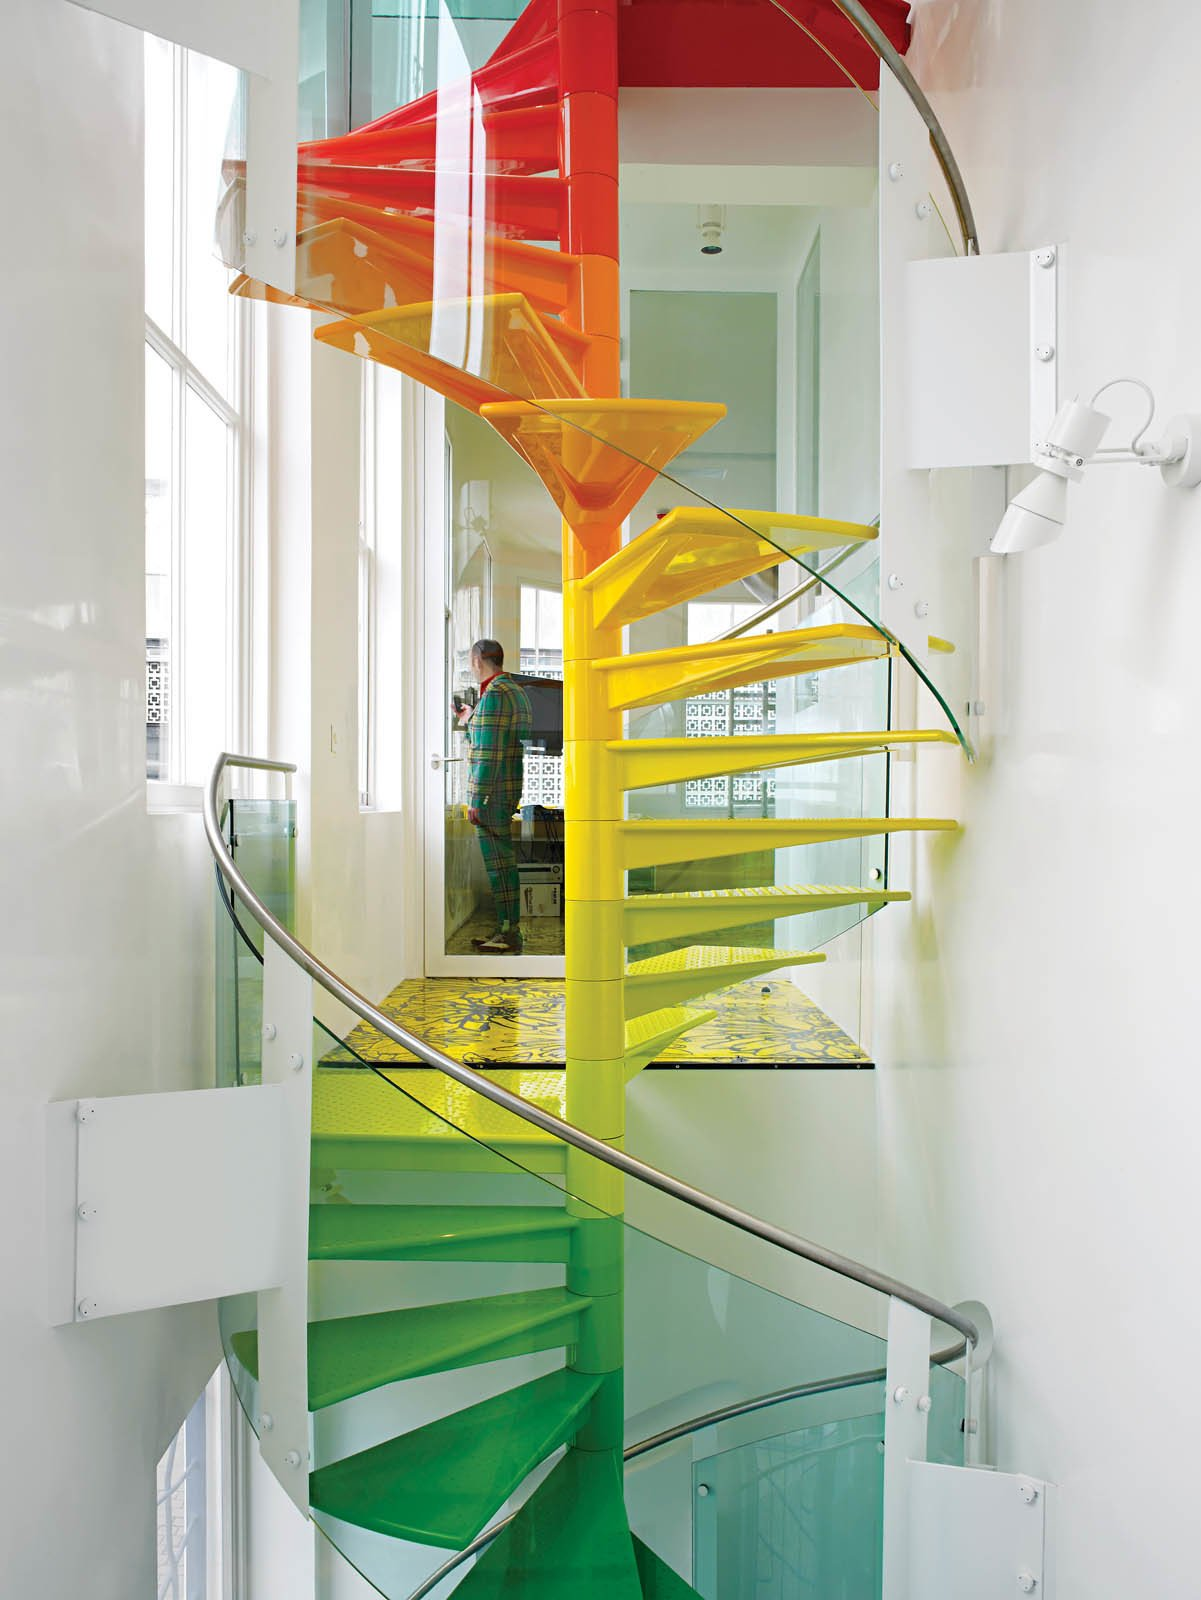 Staircase, Metal Railing, and Metal Tread Ab Rogers dons a bold suit that suits the spirit of the accompanying decor he designed.  Photo 1 of 6 in A Family Goes Somewhere Over the Rainbow